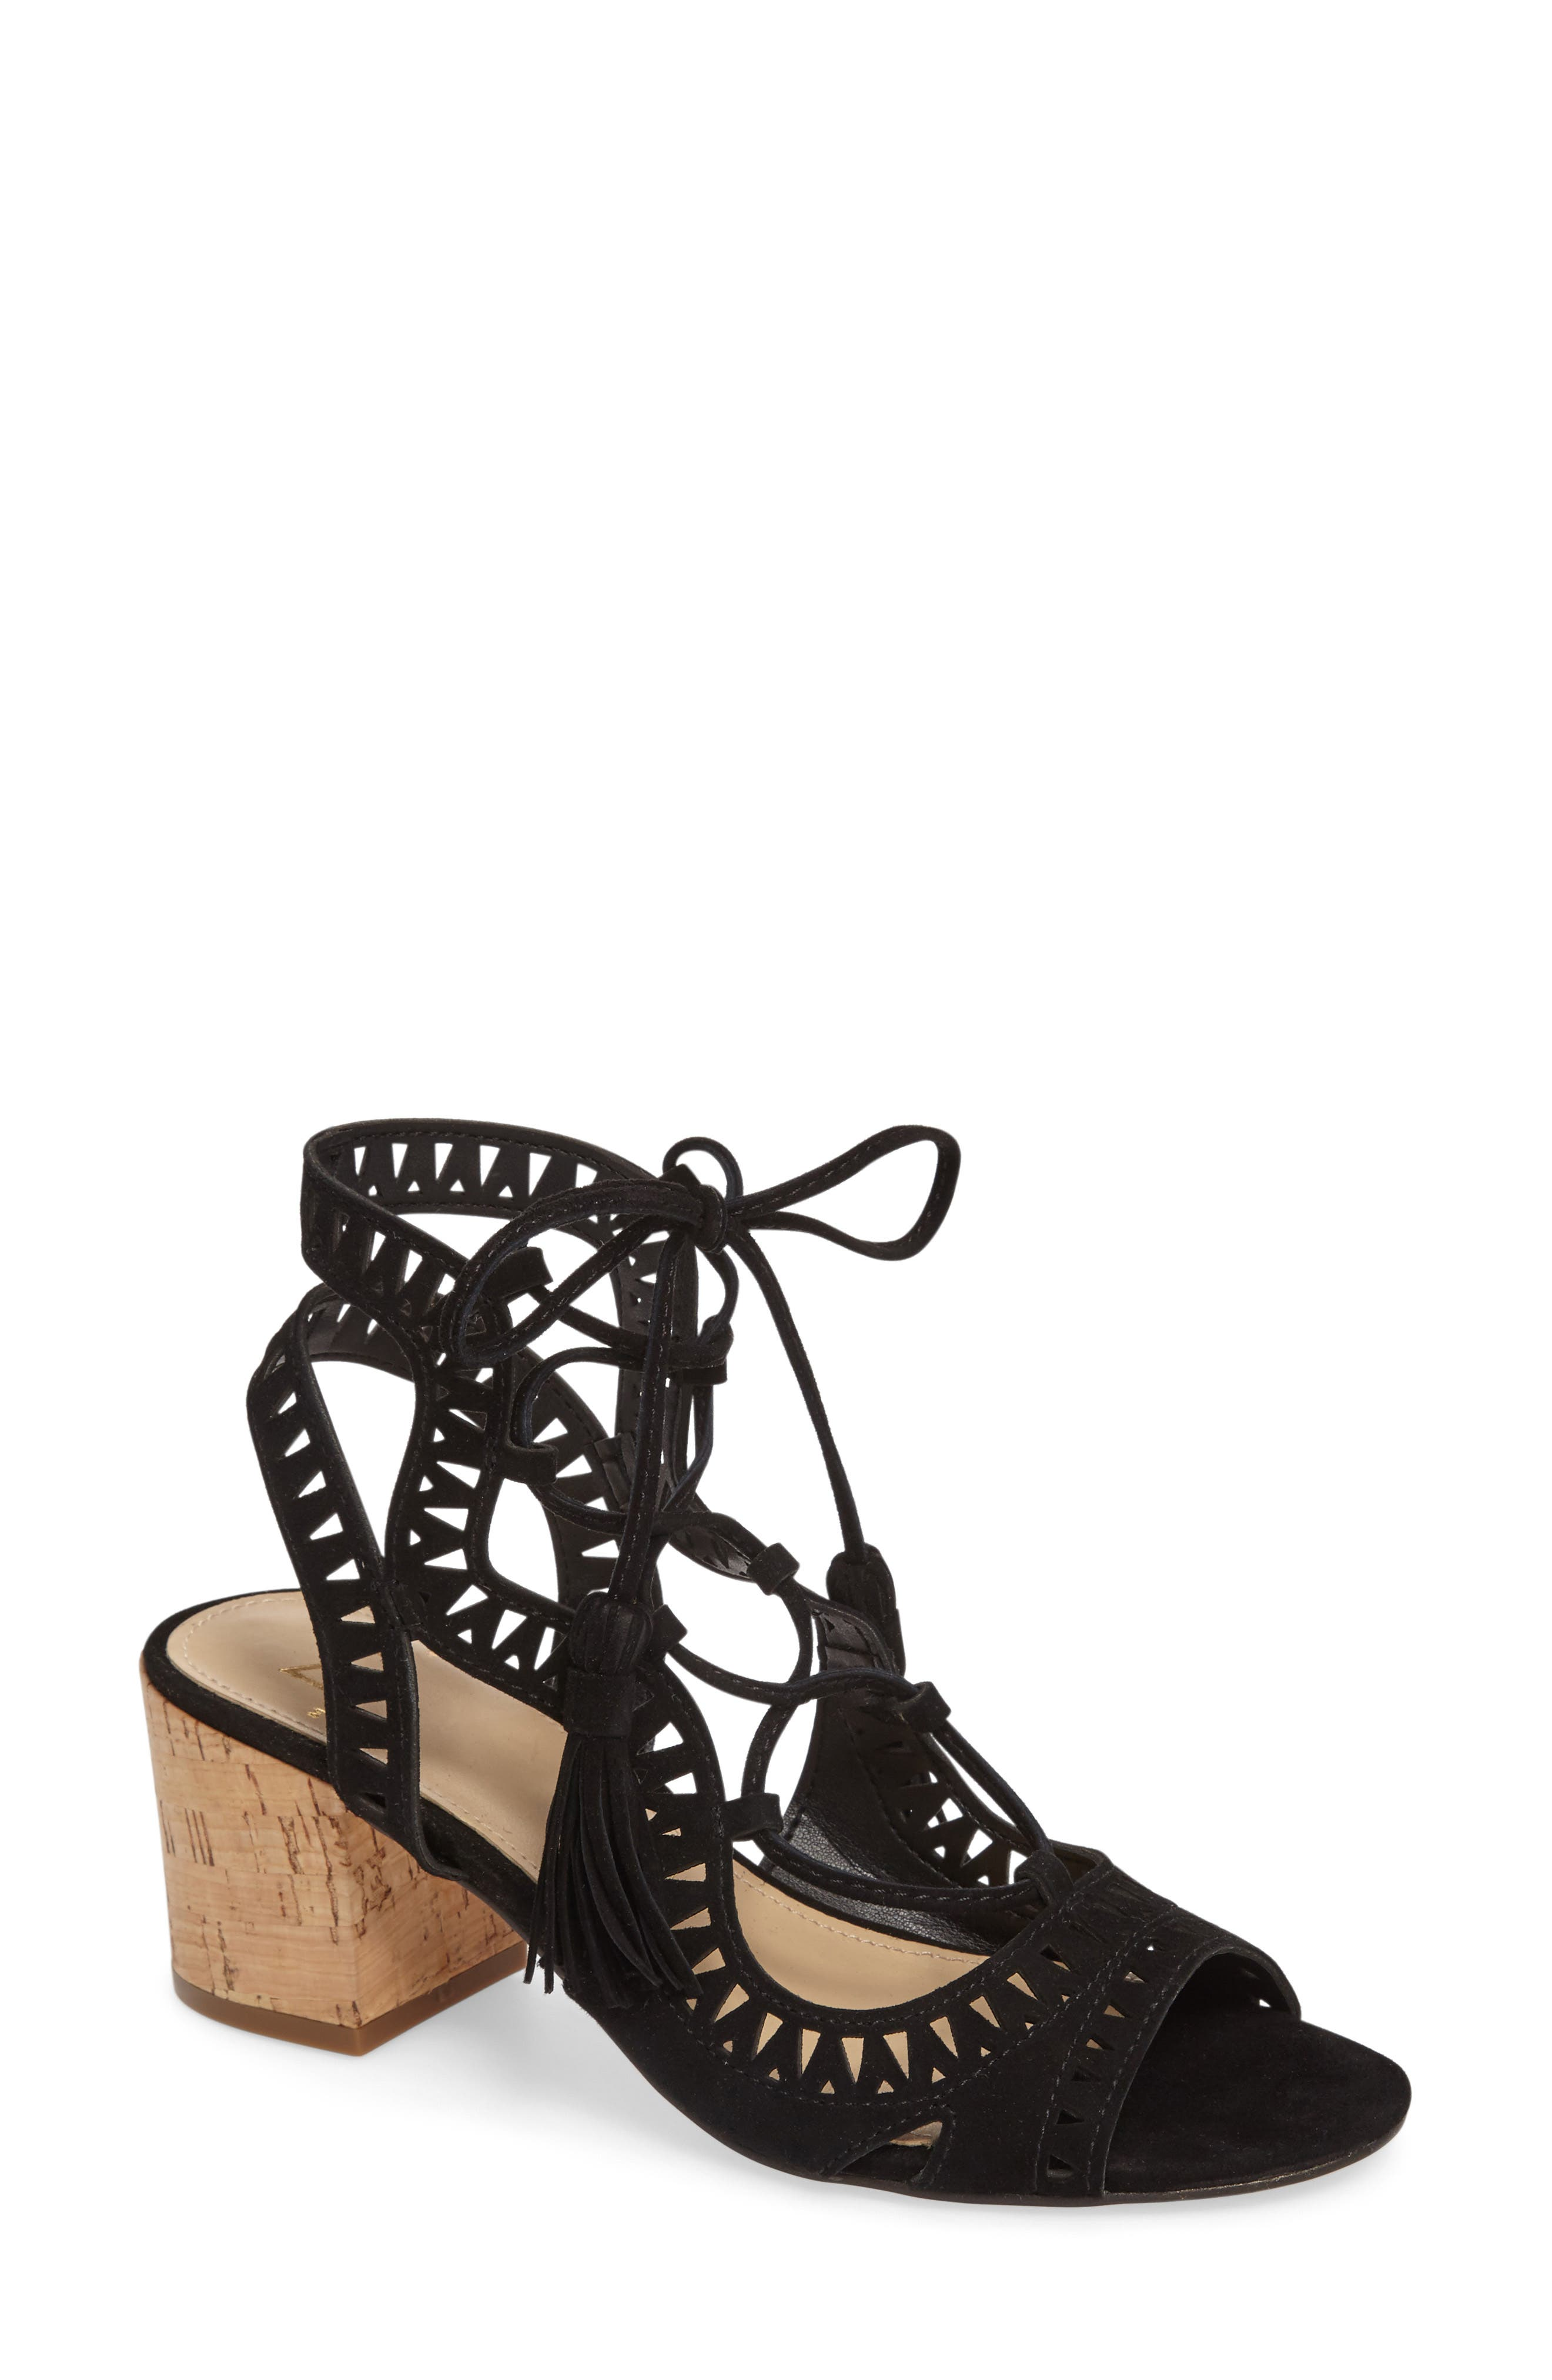 Alternate Image 1 Selected - Marc Fisher LTD Remone Ghillie Lace Sandal (Women)